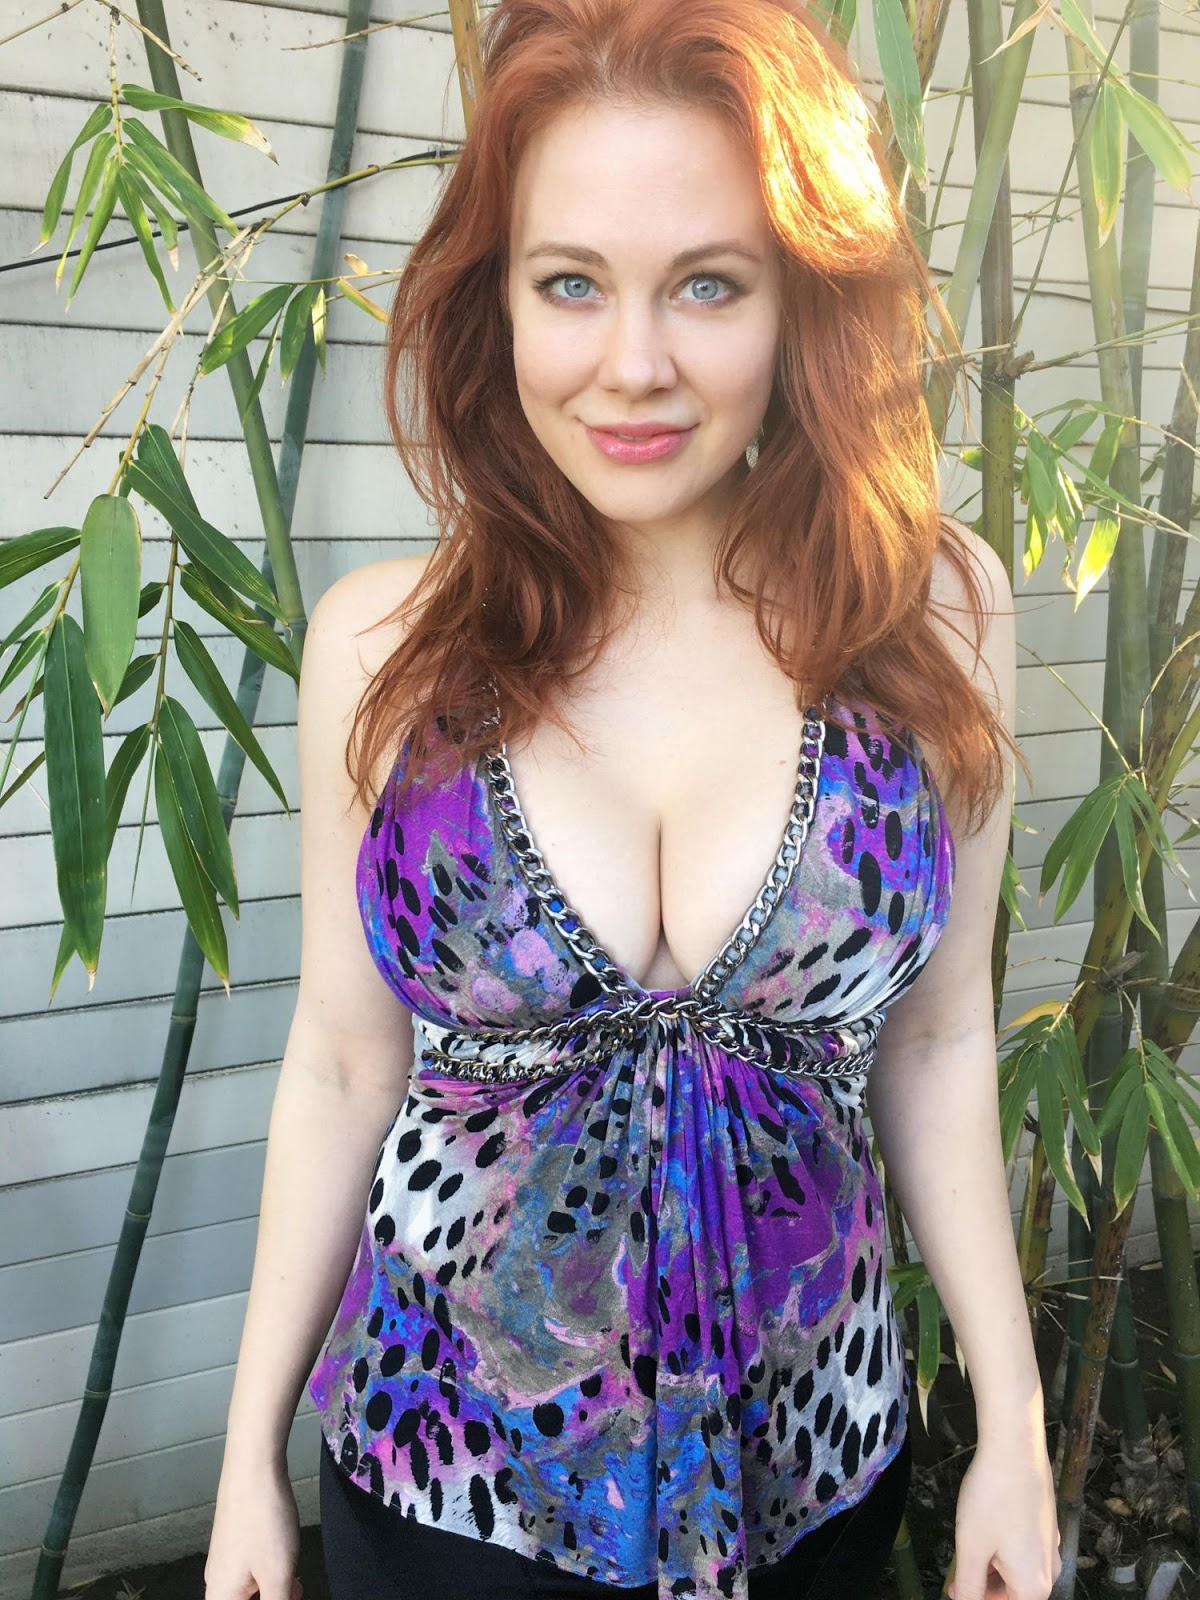 Maitland Ward Cleavage while out - Photo Maitland Ward 2016